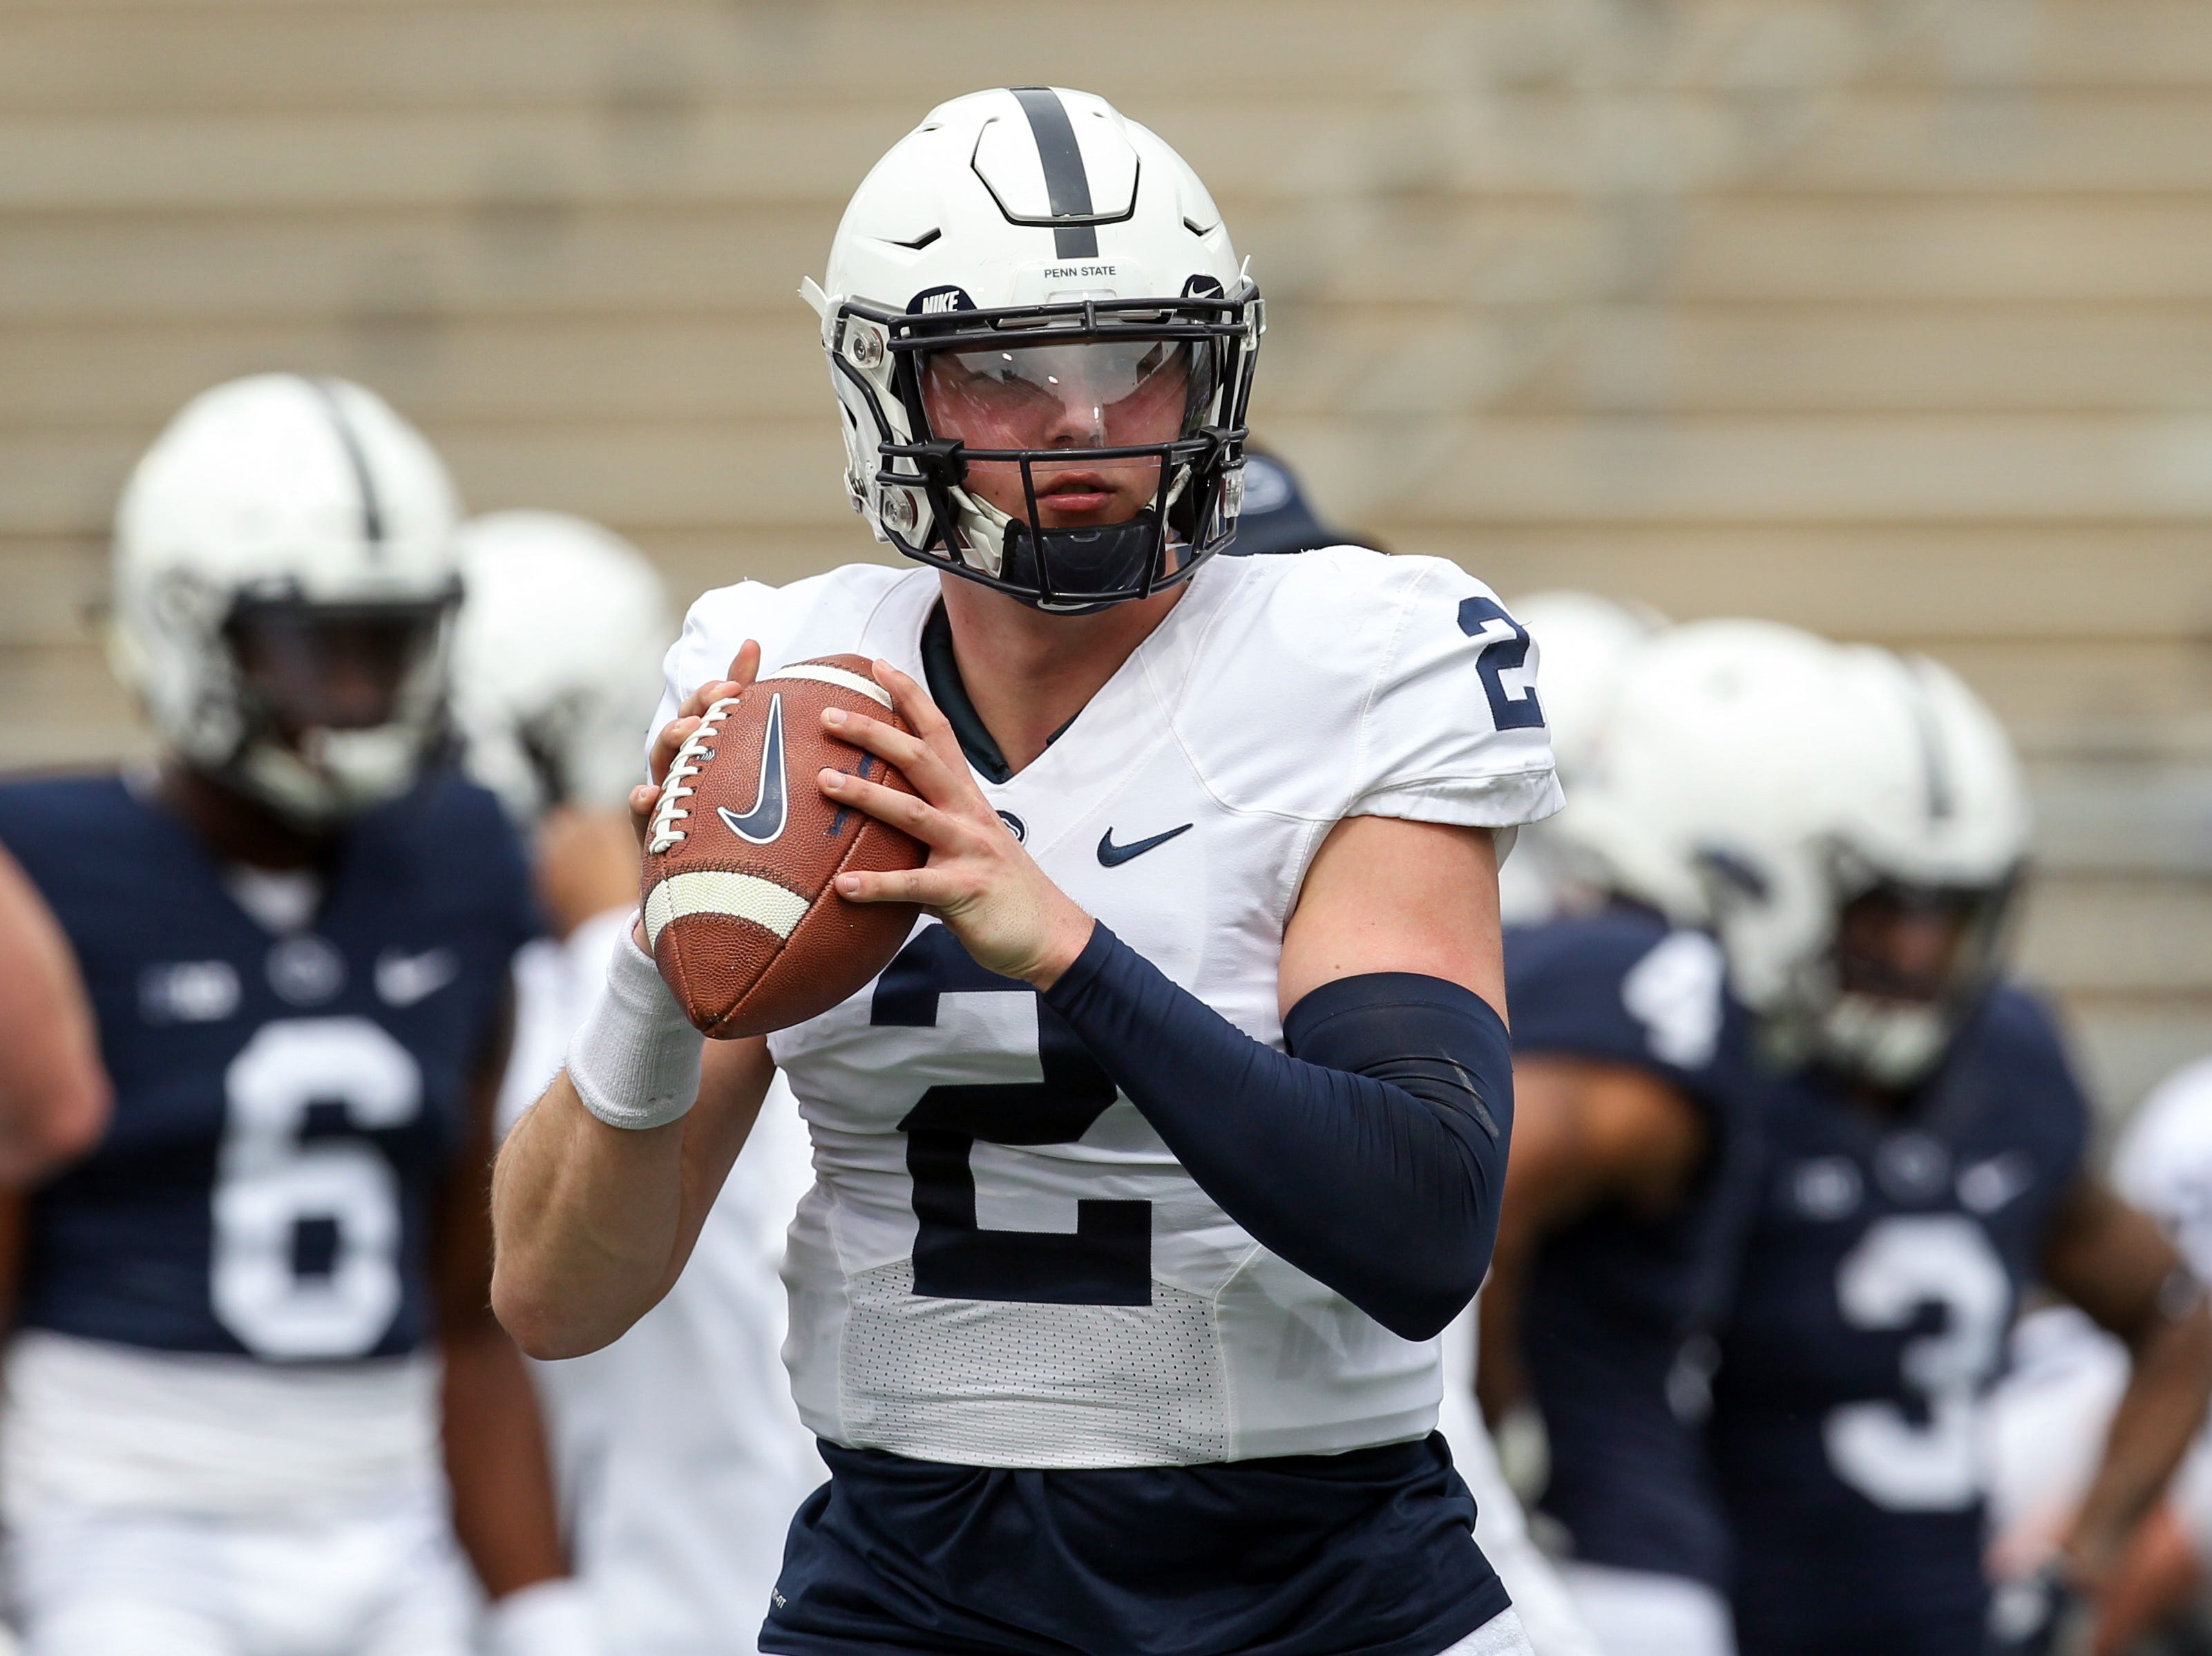 Apr 13, 2019; University Park, PA, USA; Penn State Nittany Lions quarterback Tommy Stevens (2) looks to throw a pass during a warmup prior to the Blue White spring game at Beaver Stadium. Mandatory Credit: Matthew O'Haren-USA TODAY Sports